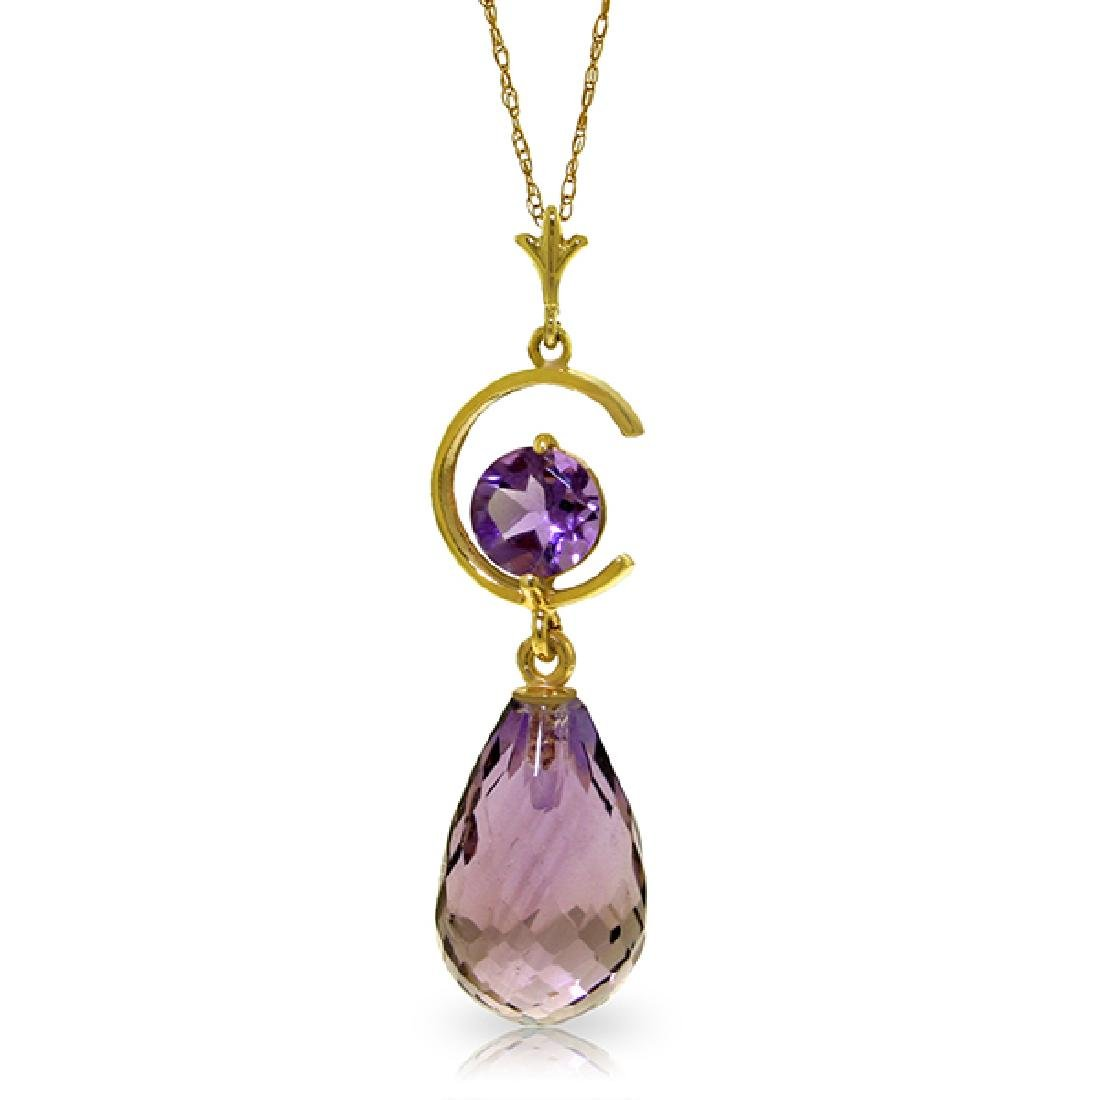 Genuine 5.5 ctw Amethyst Necklace Jewelry 14KT Yellow